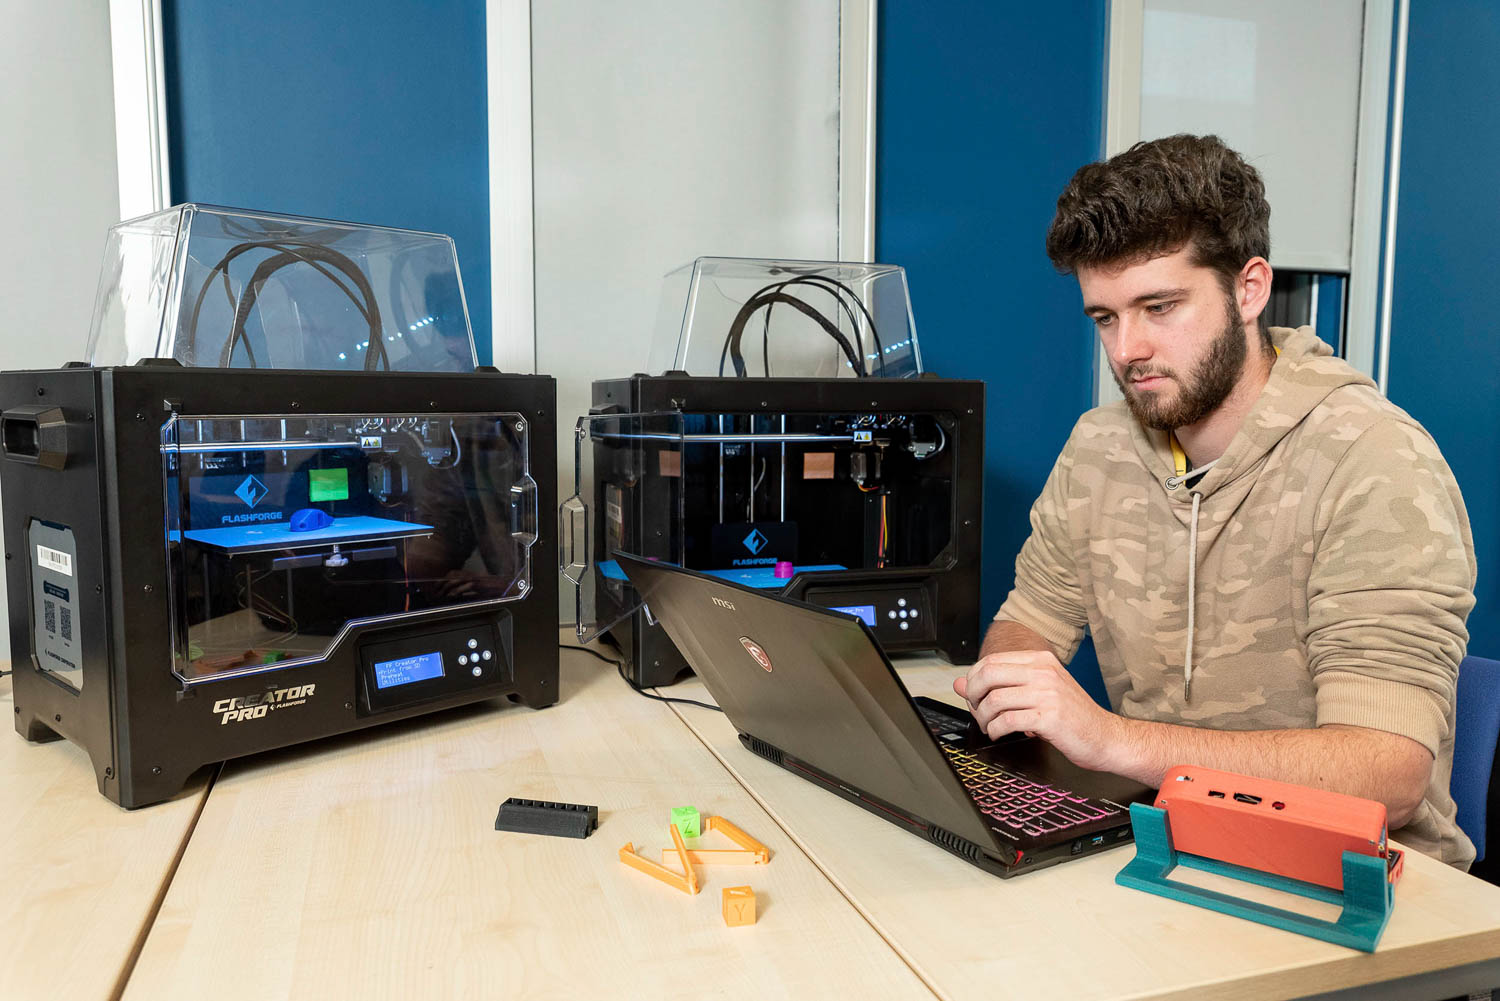 Student and 3D printers